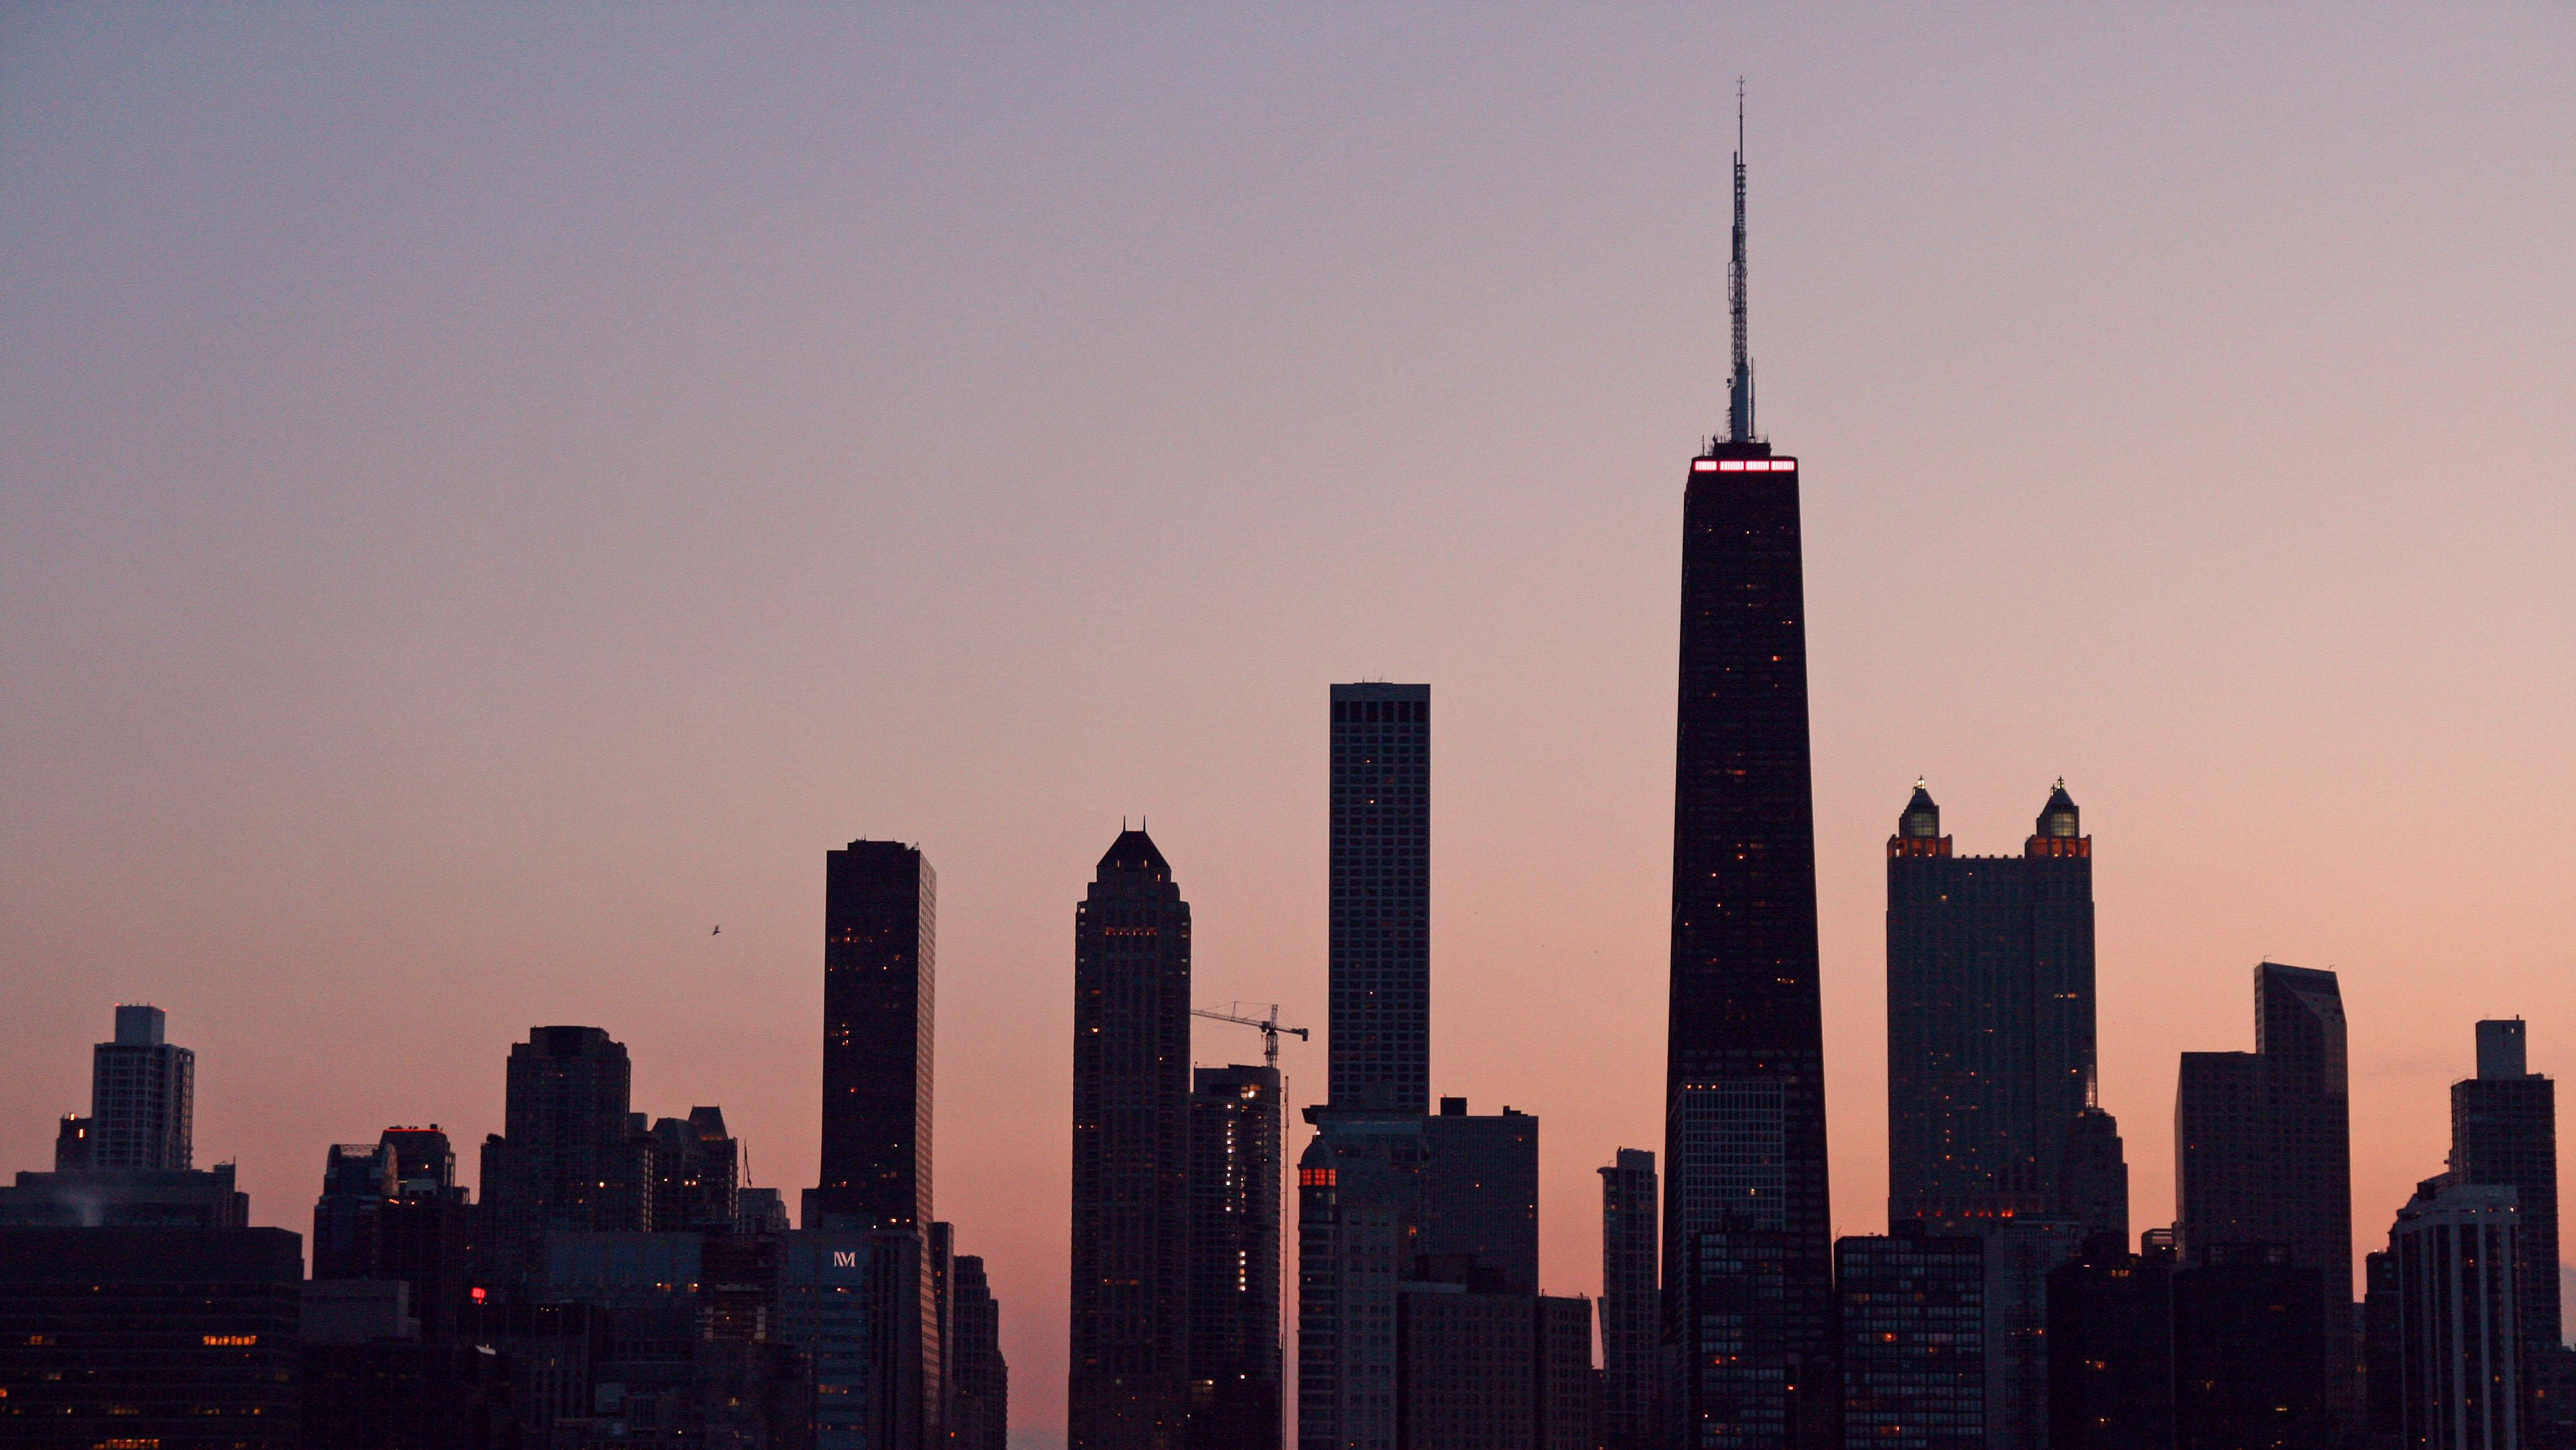 Chicago-Area Population Drops For 3rd Straight Year